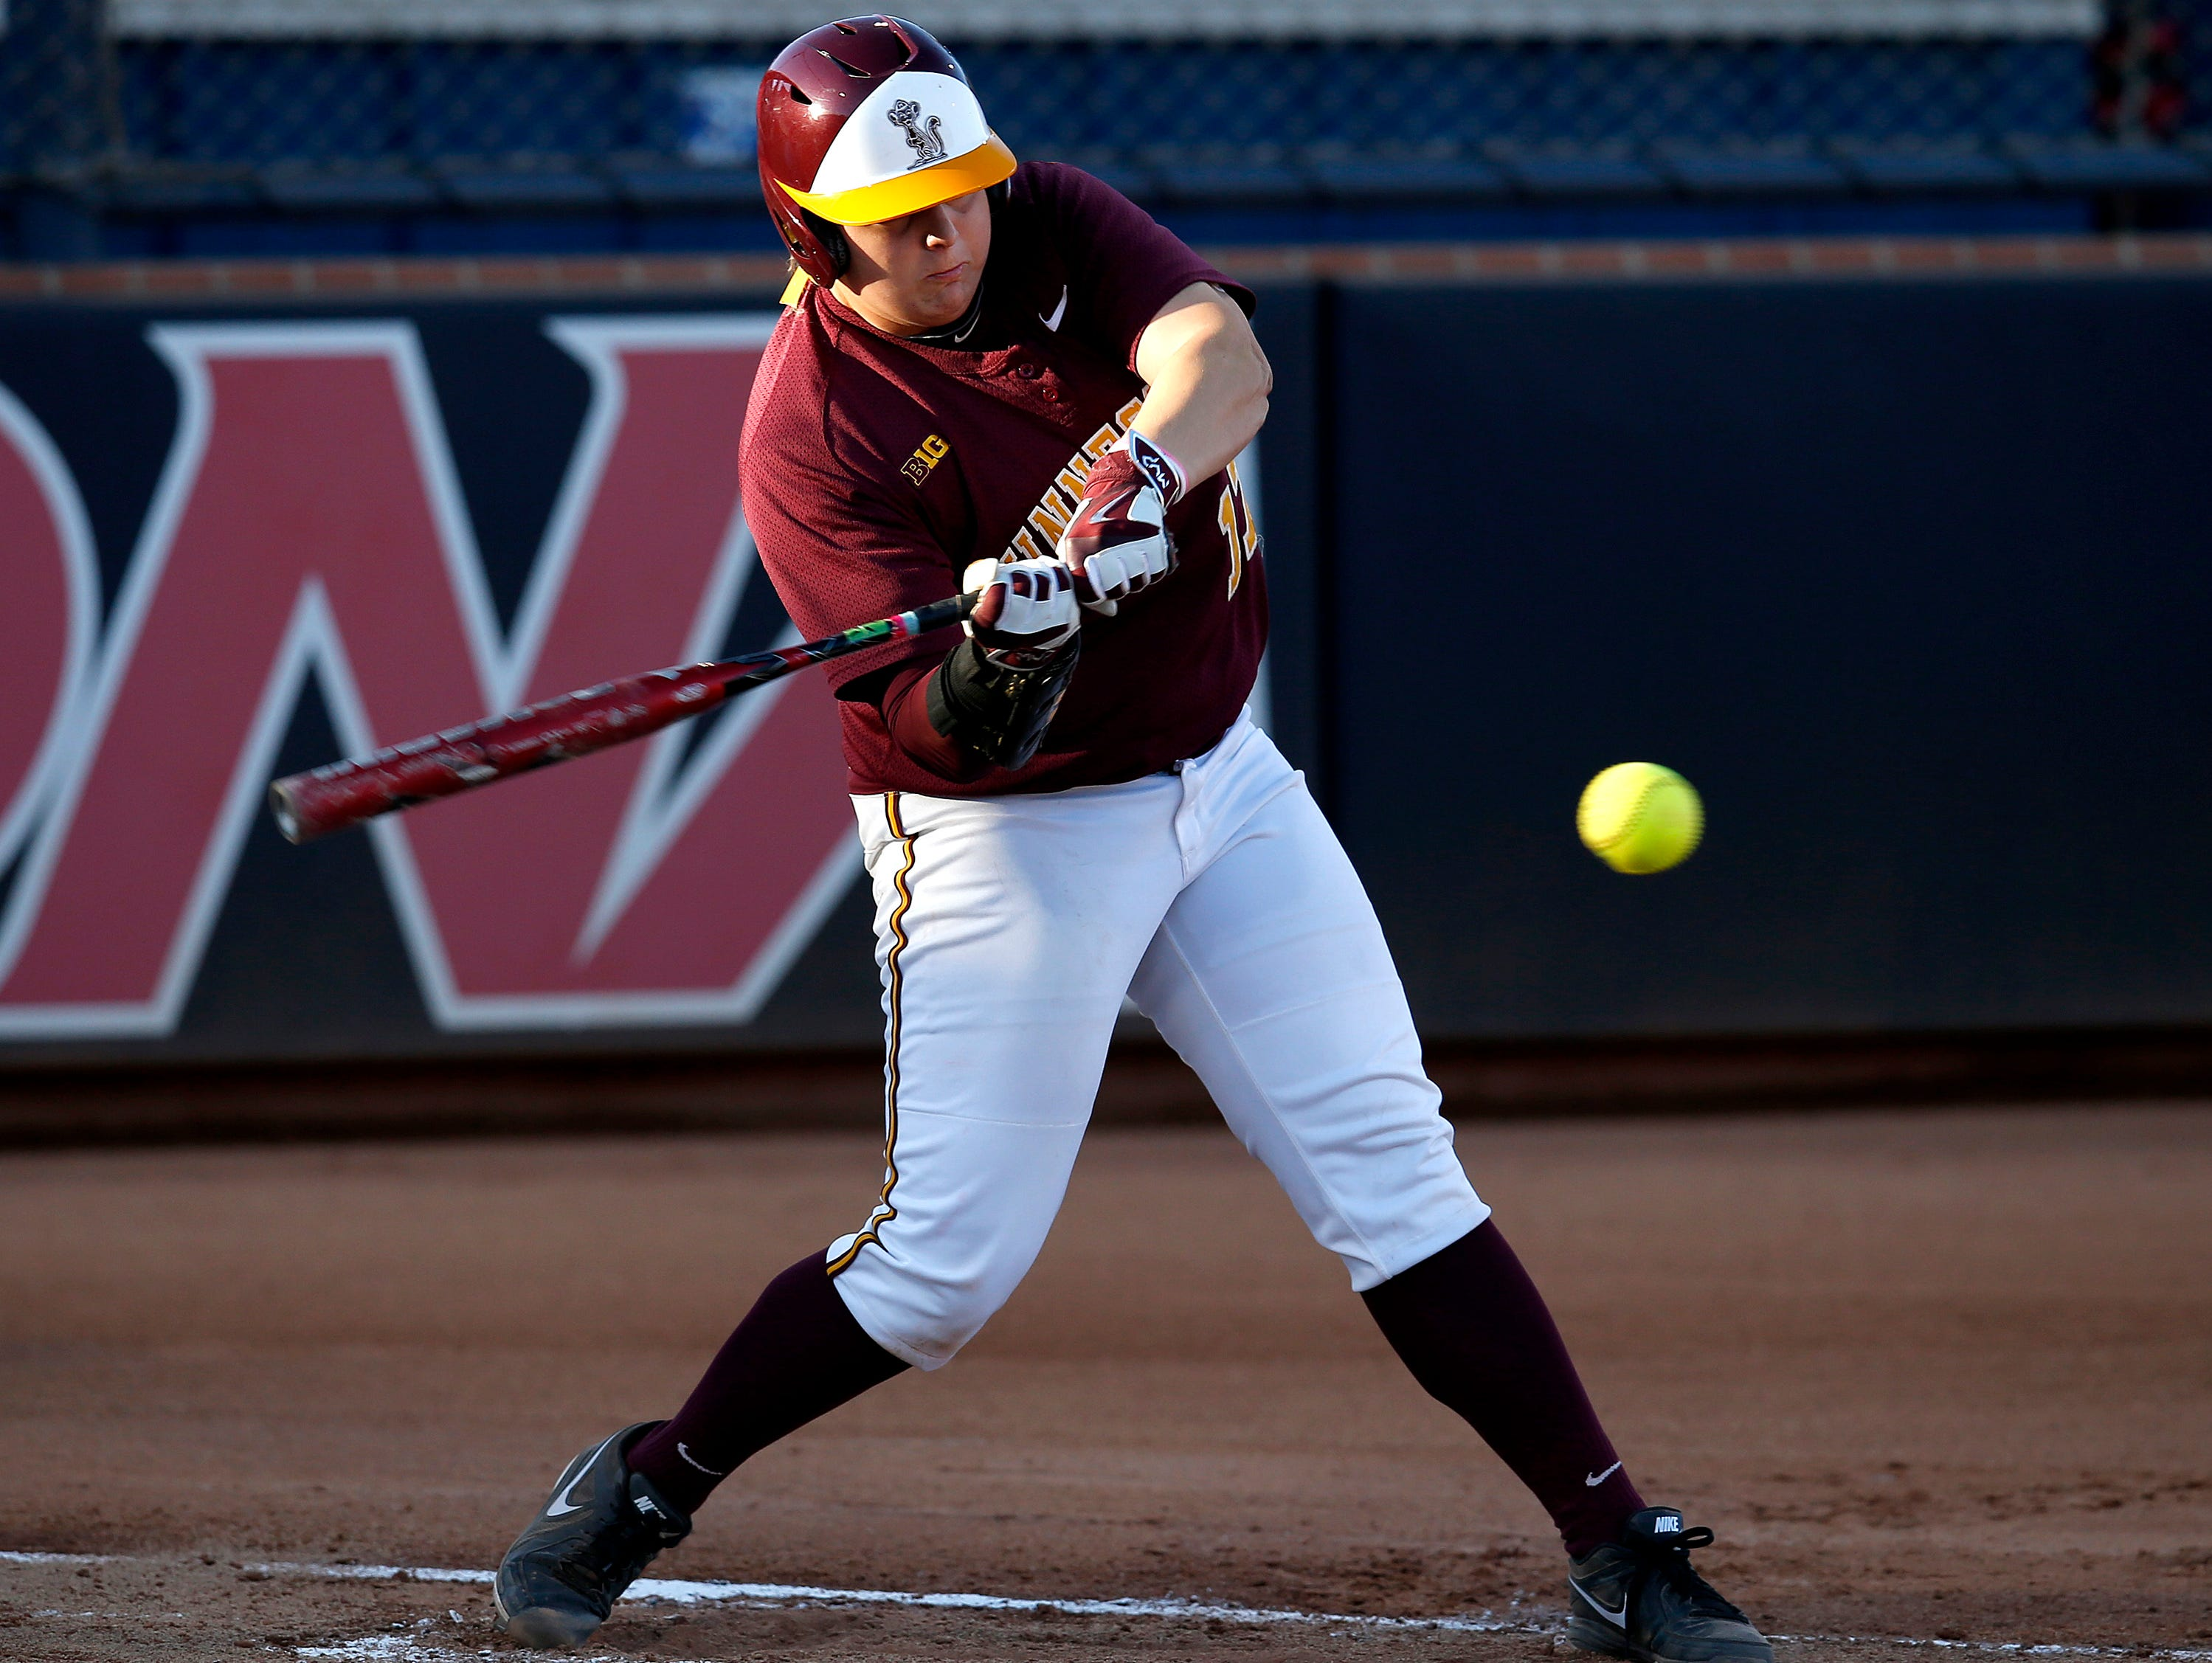 Senior Sara Groenewegen's arm may be the difference for Minnesota in this year's NCAA Tournament.